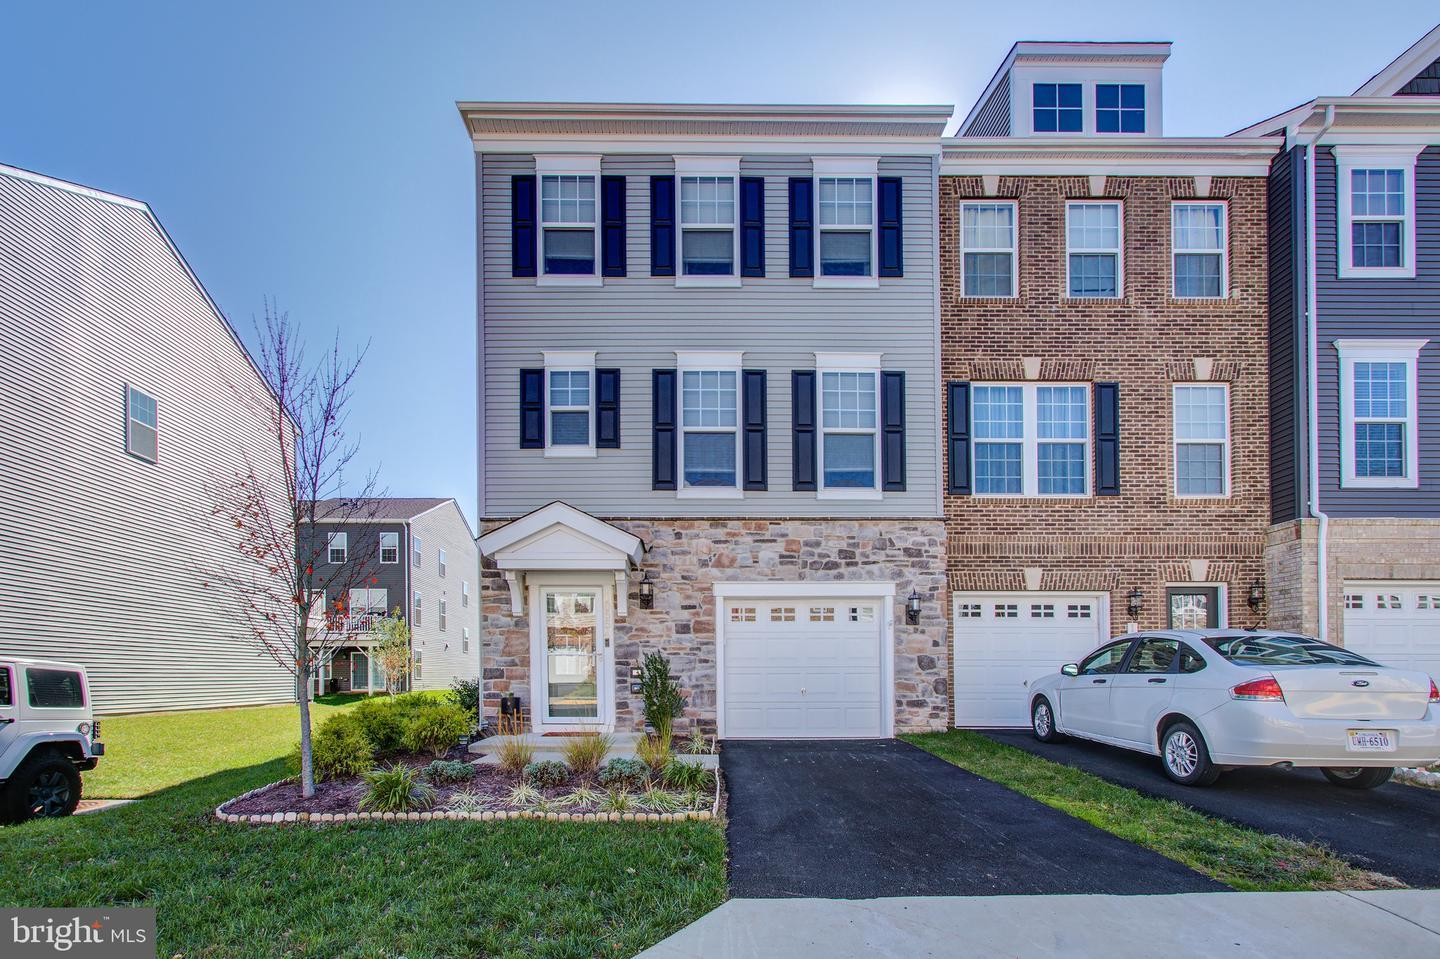 10554 Hinton Way for sale in Manassas, VA